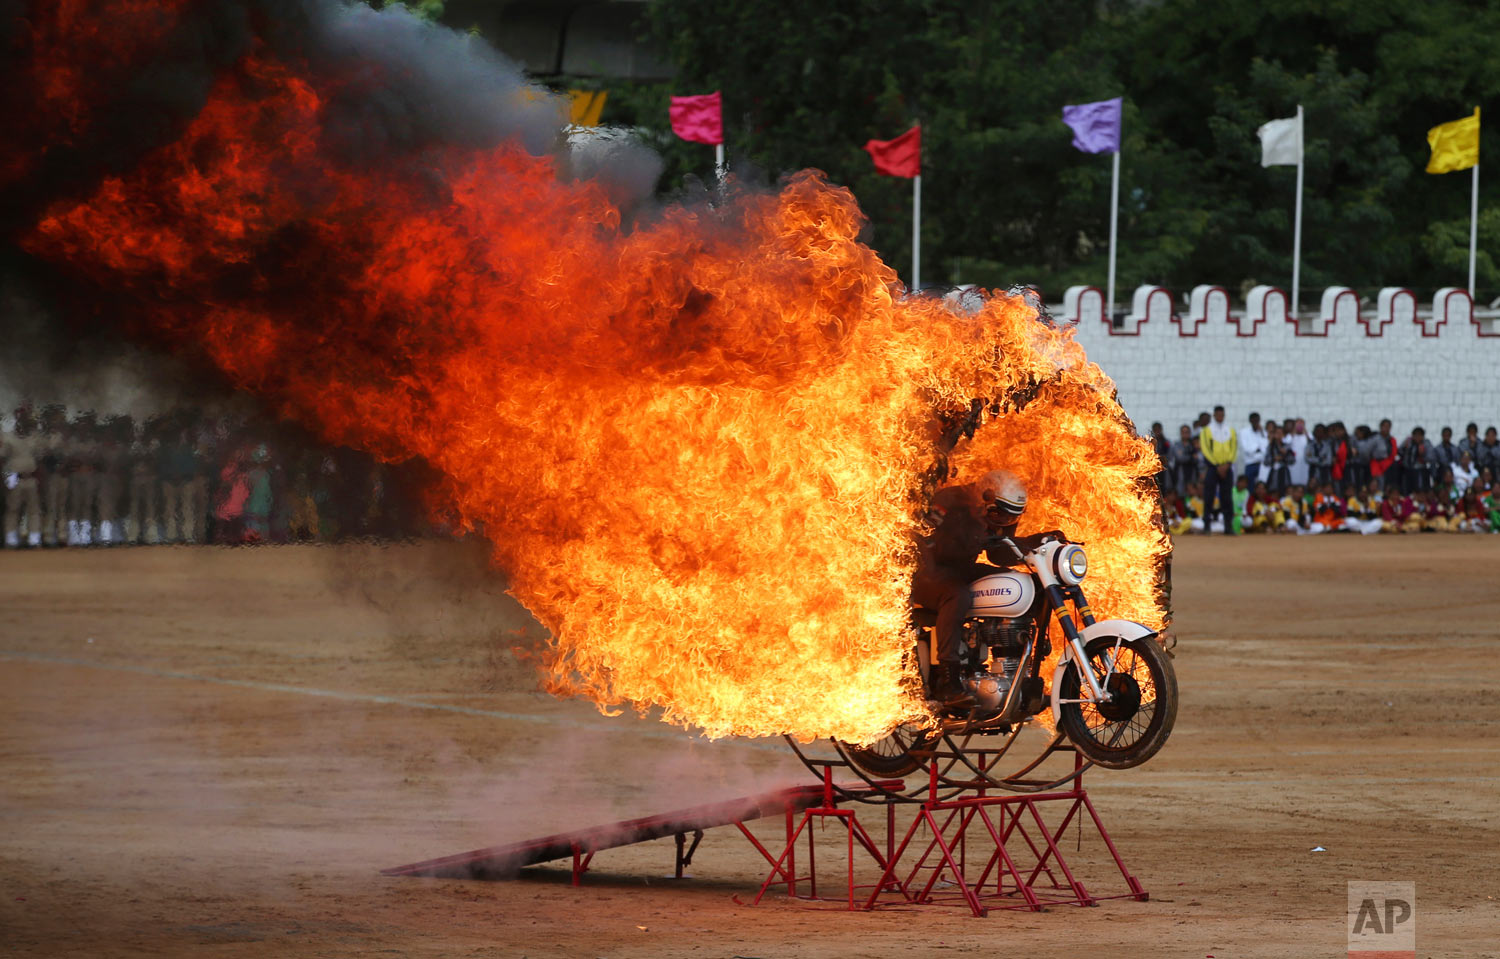 A member of ASC Tornados, the motorcycle display team of the Indian army, jumps through a fire ring as he performs a daredevil stunt during Indian Independence Day celebrations in Bangalore, India, Wednesday, Aug. 15, 2018. (AP Photo/Aijaz Rahi)